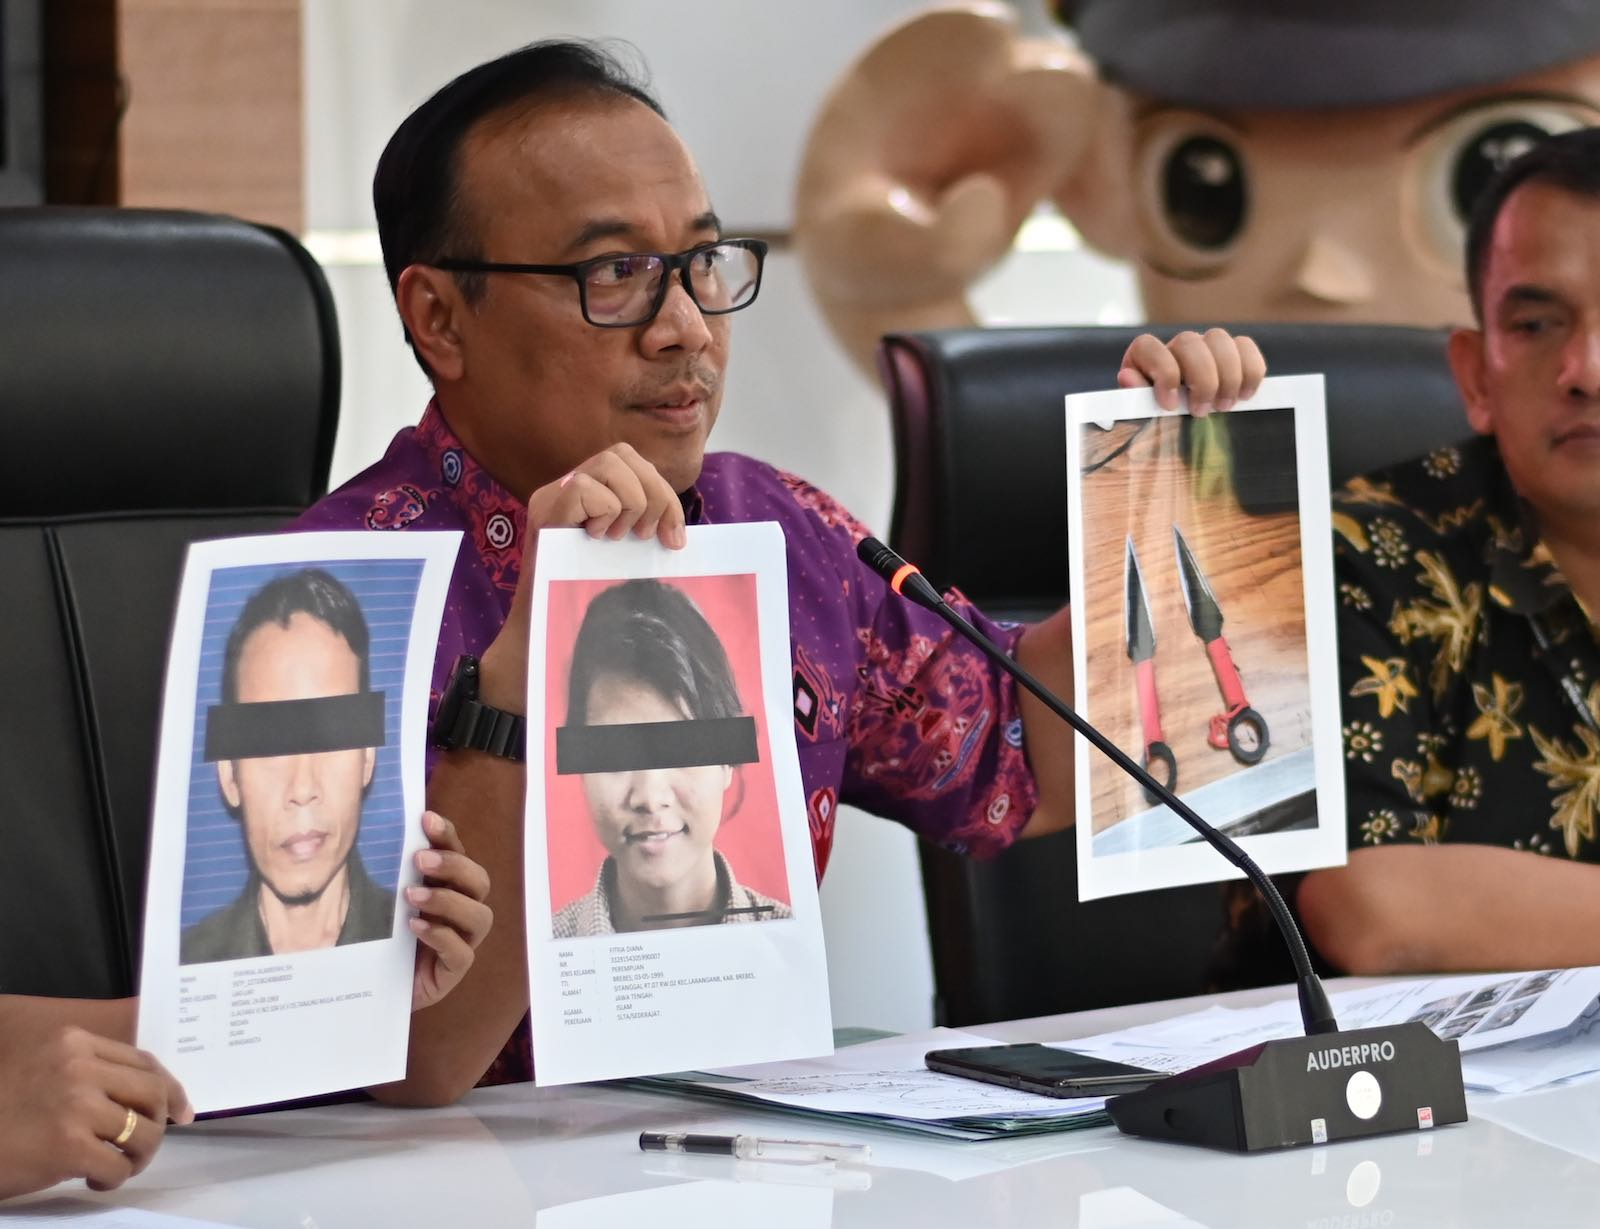 Police spokesman Brigadier General Dedi Prasetyo speaks to the media about the attack on Indonesia's chief security minister Wiranto (Photo: Bay Ismoyo/AFP/Getty Images)